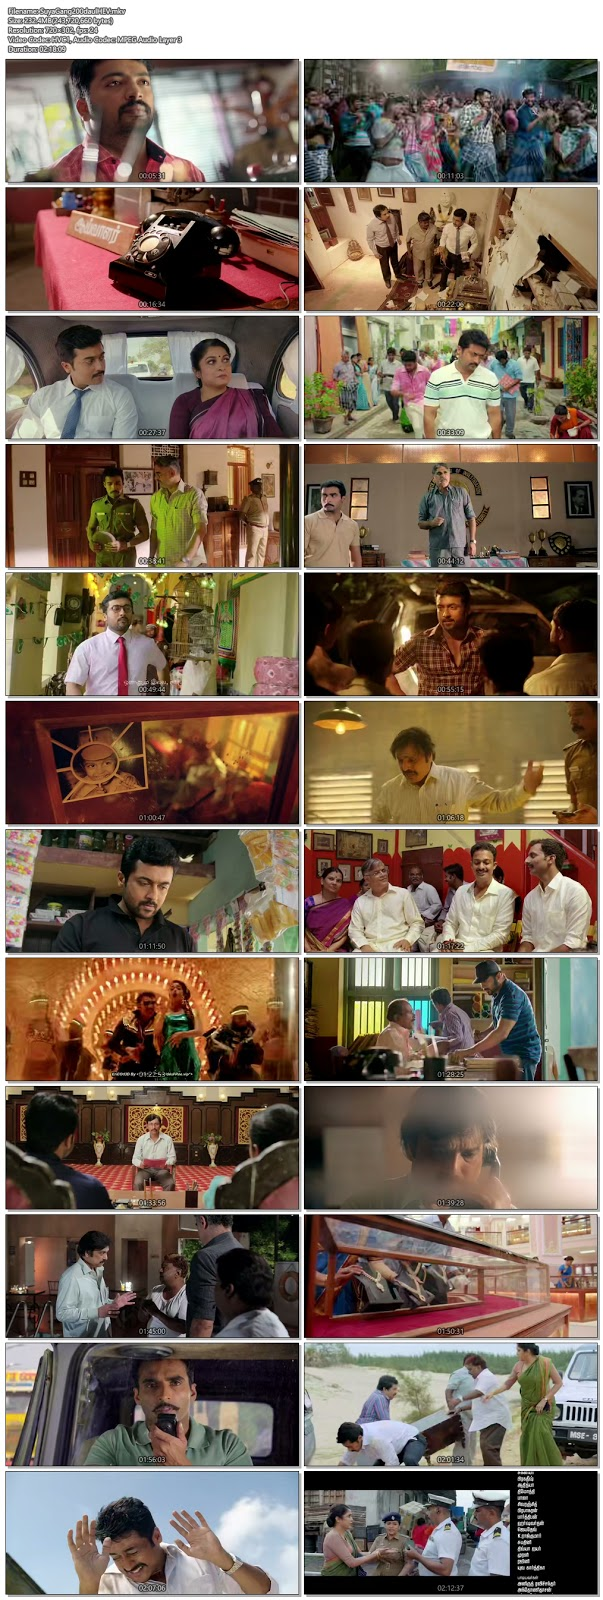 Suriya Ki Gang 2018 Dual Audio HDRip 480p 200Mb x265 HEVC world4ufree.fun , South indian movie Suriya Ki Gang 2018 hindi dubbed world4ufree.fun 720p hdrip webrip dvdrip 700mb brrip bluray free download or watch online at world4ufree.fun